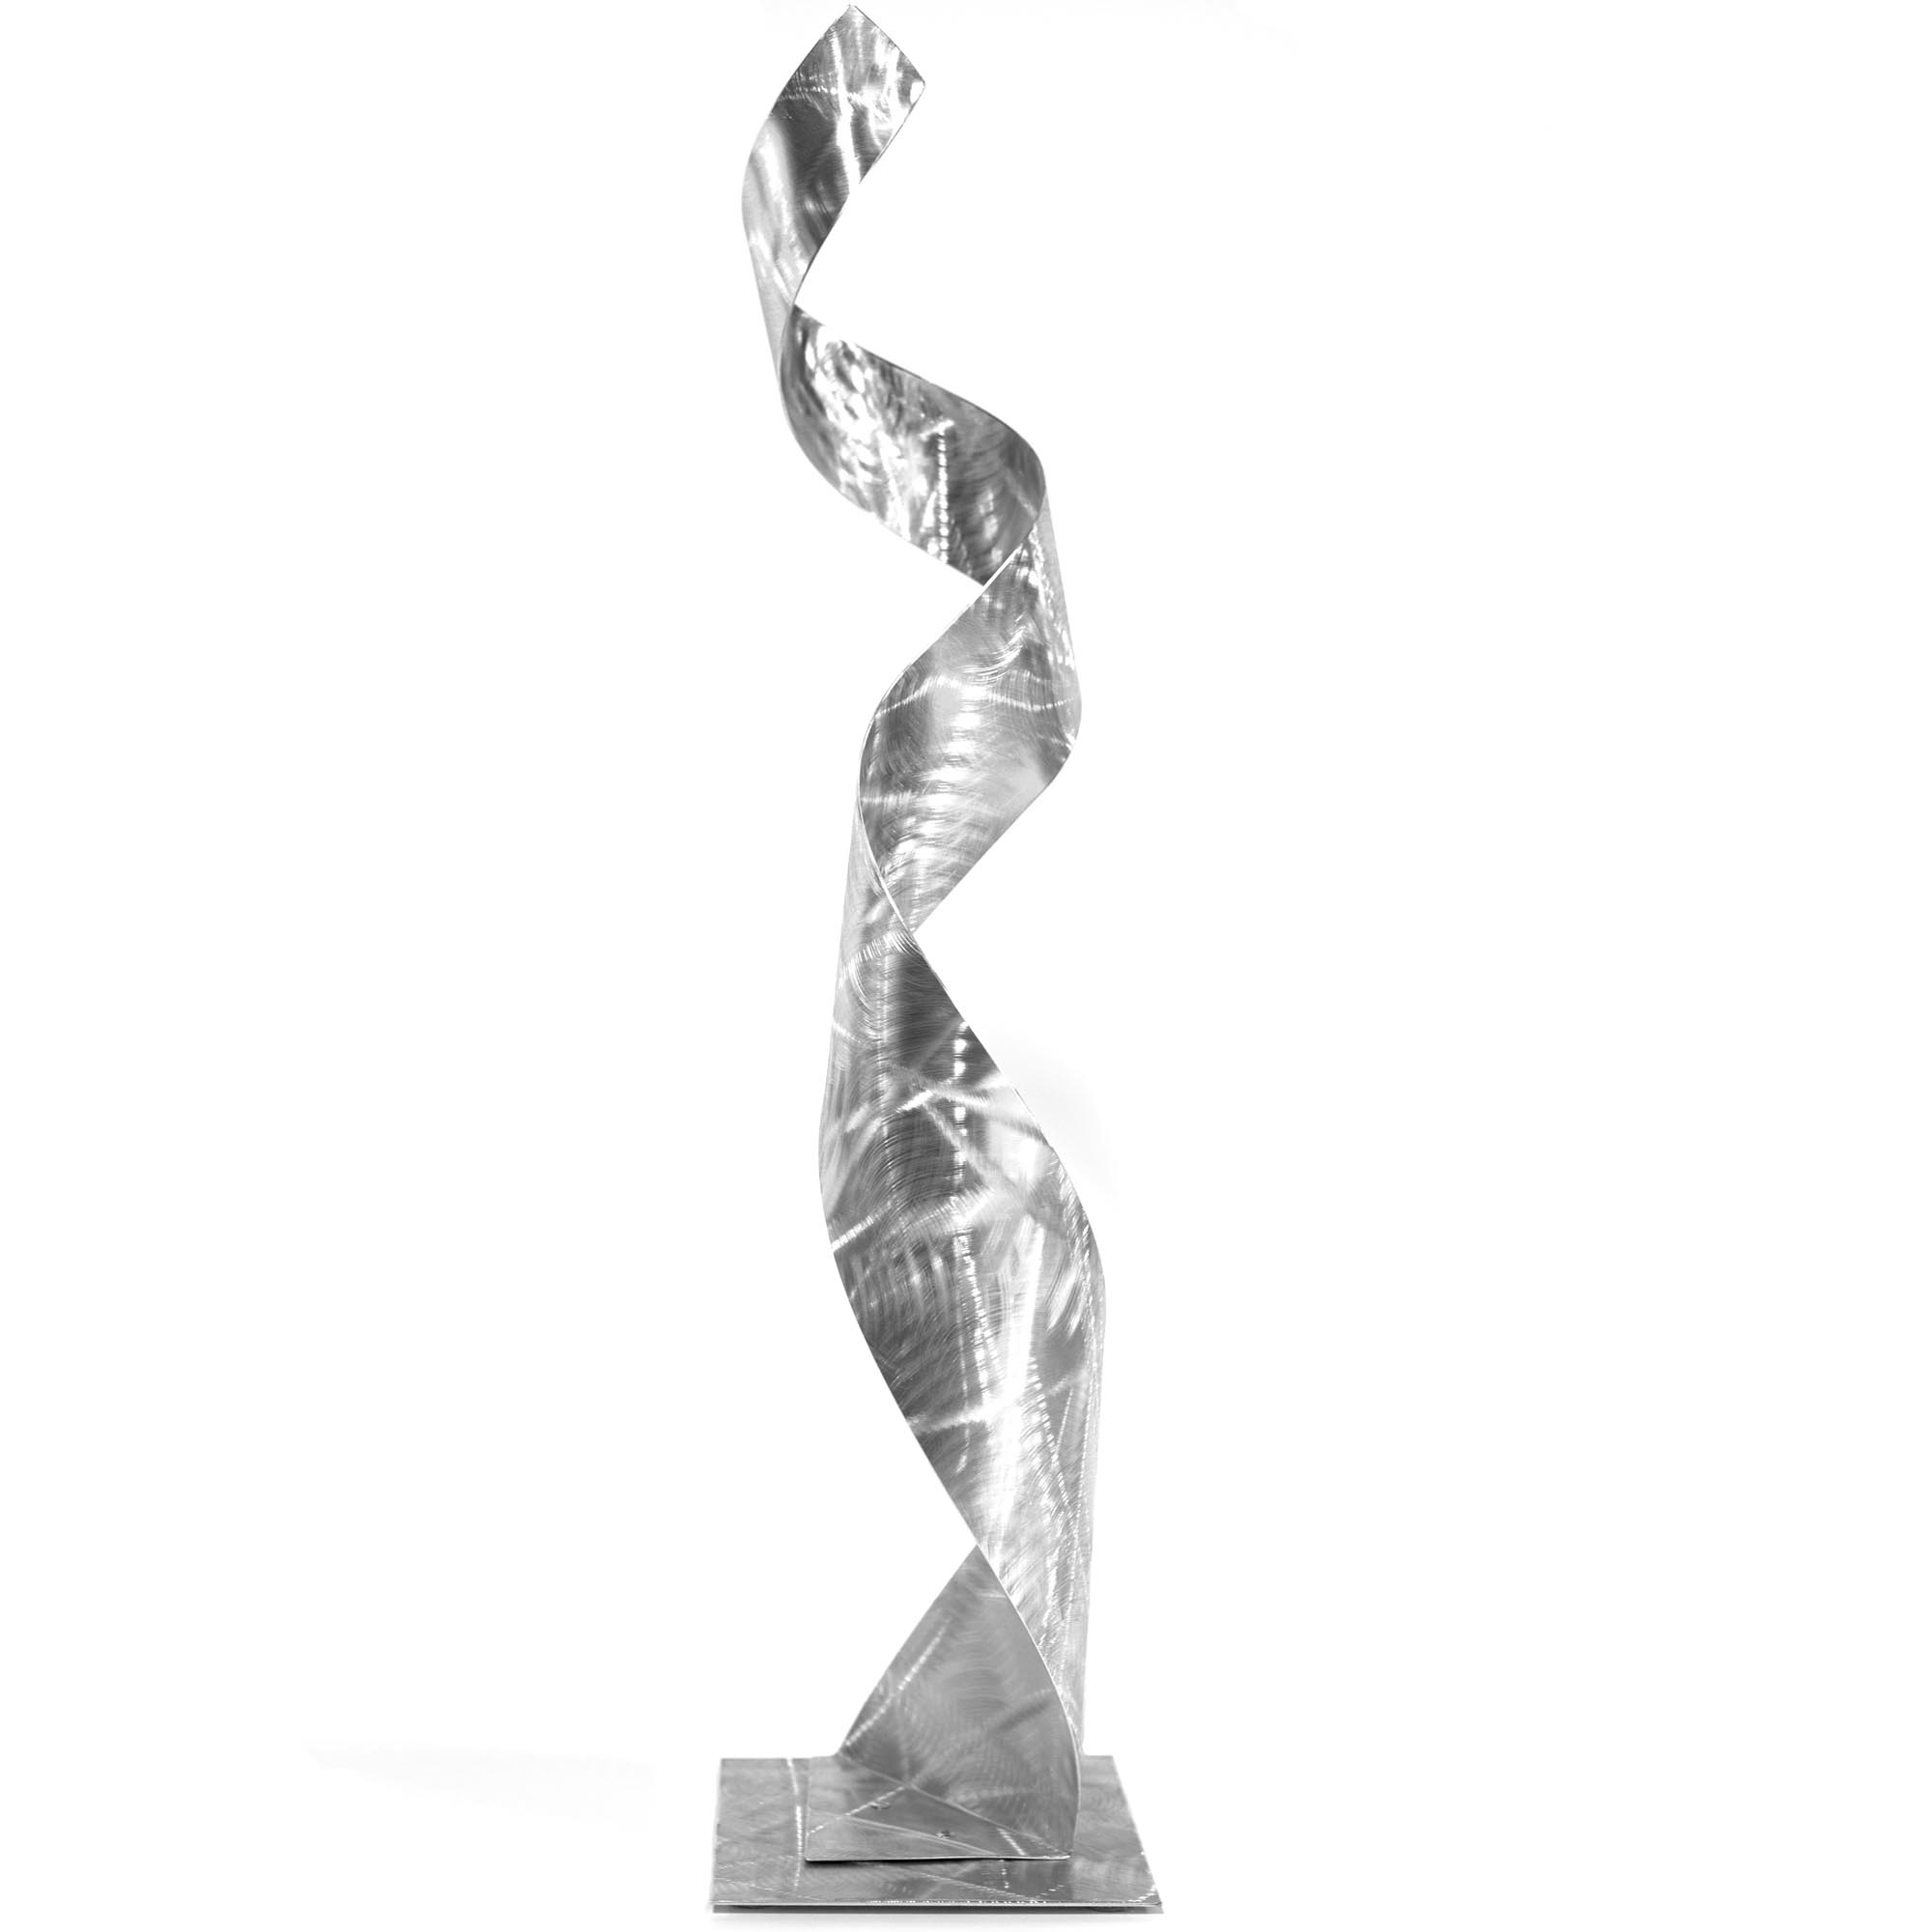 Helena Martin 'The Silhouette Sculpture' 9in x 36in Modern Metal Art on Ground Metal